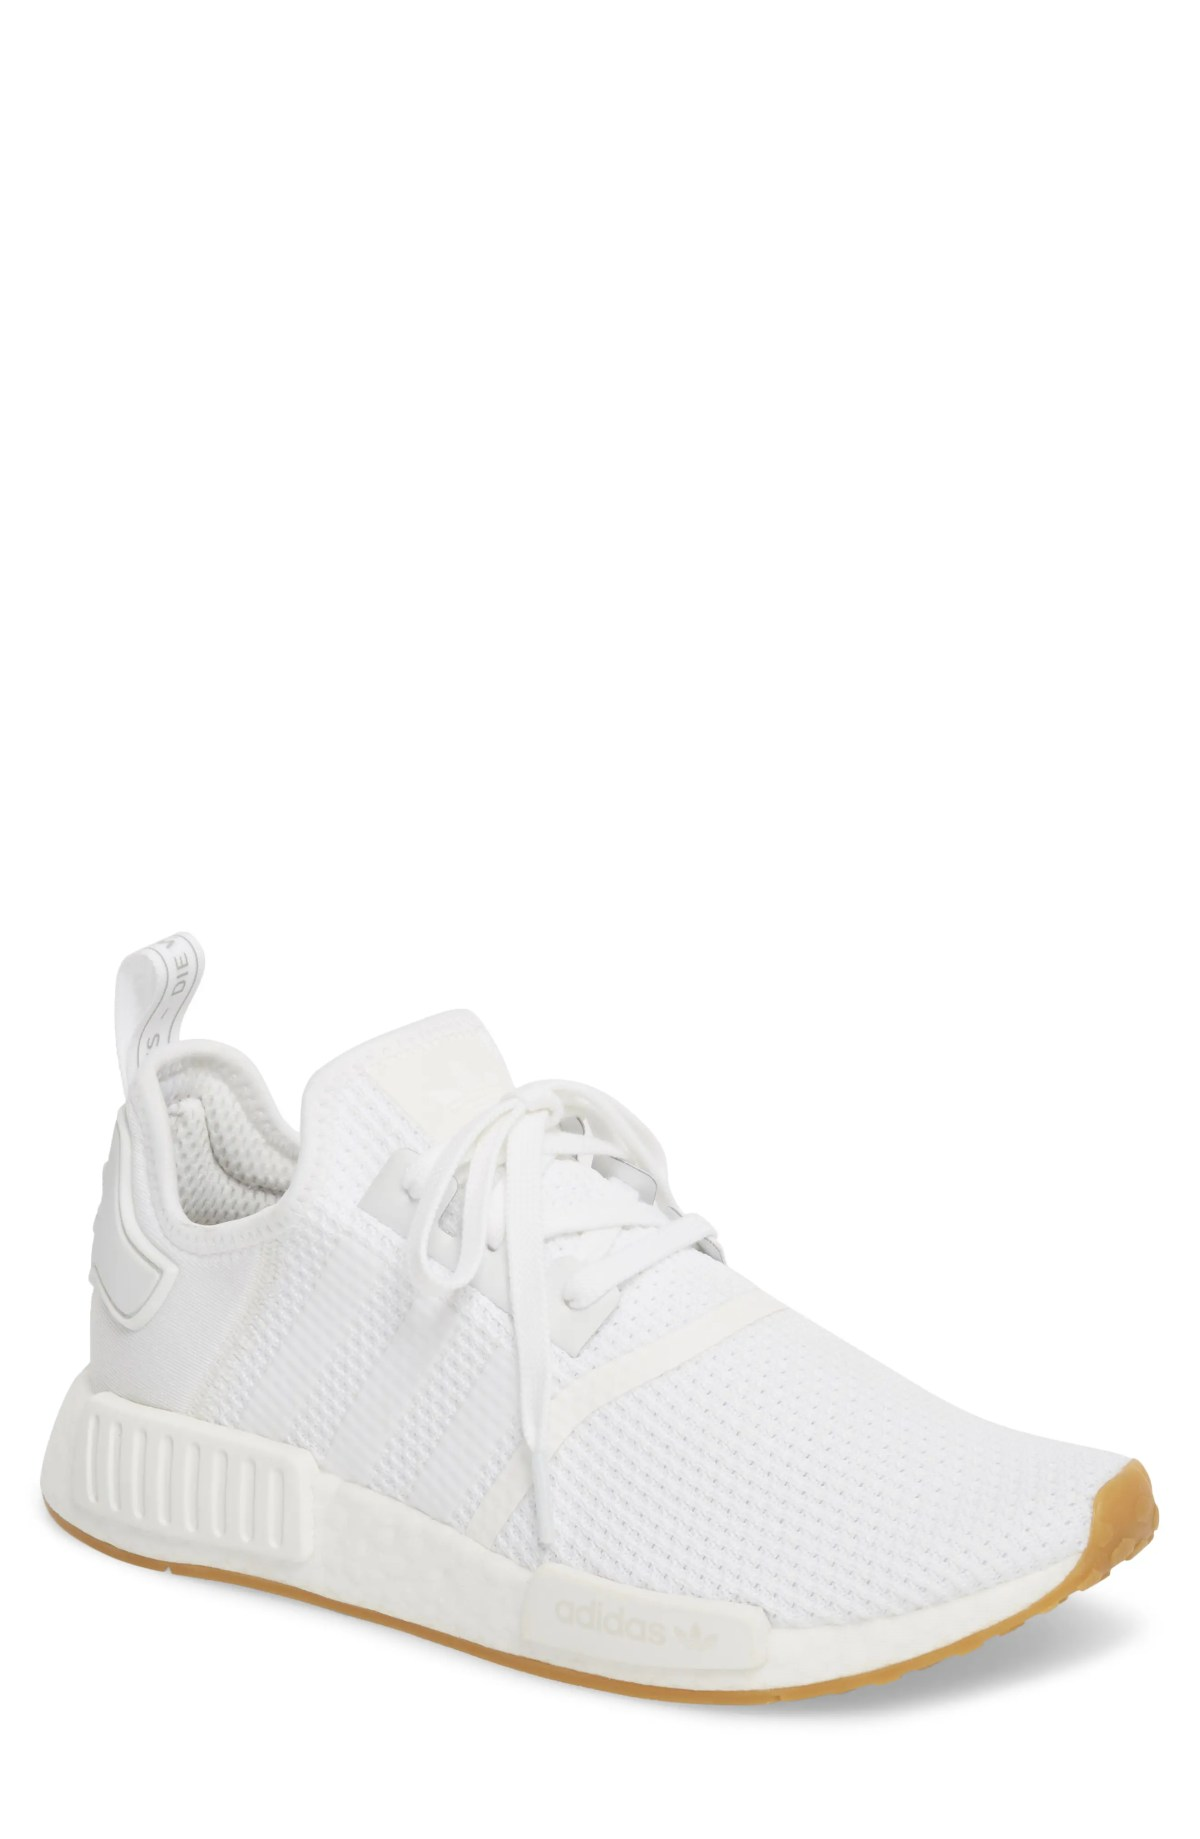 ADIDAS Originals NMD R1 Sneaker, Main, color, WHITE/ WHITE/ GUM